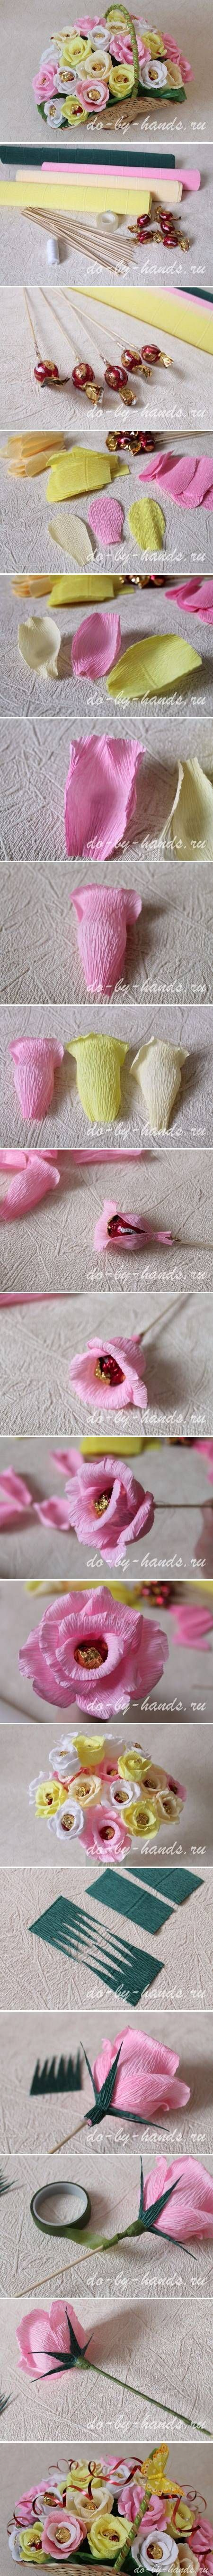 How to make Paper Roses with Chocolate Candies step by step DIY tutorial instructions / How To Instructions